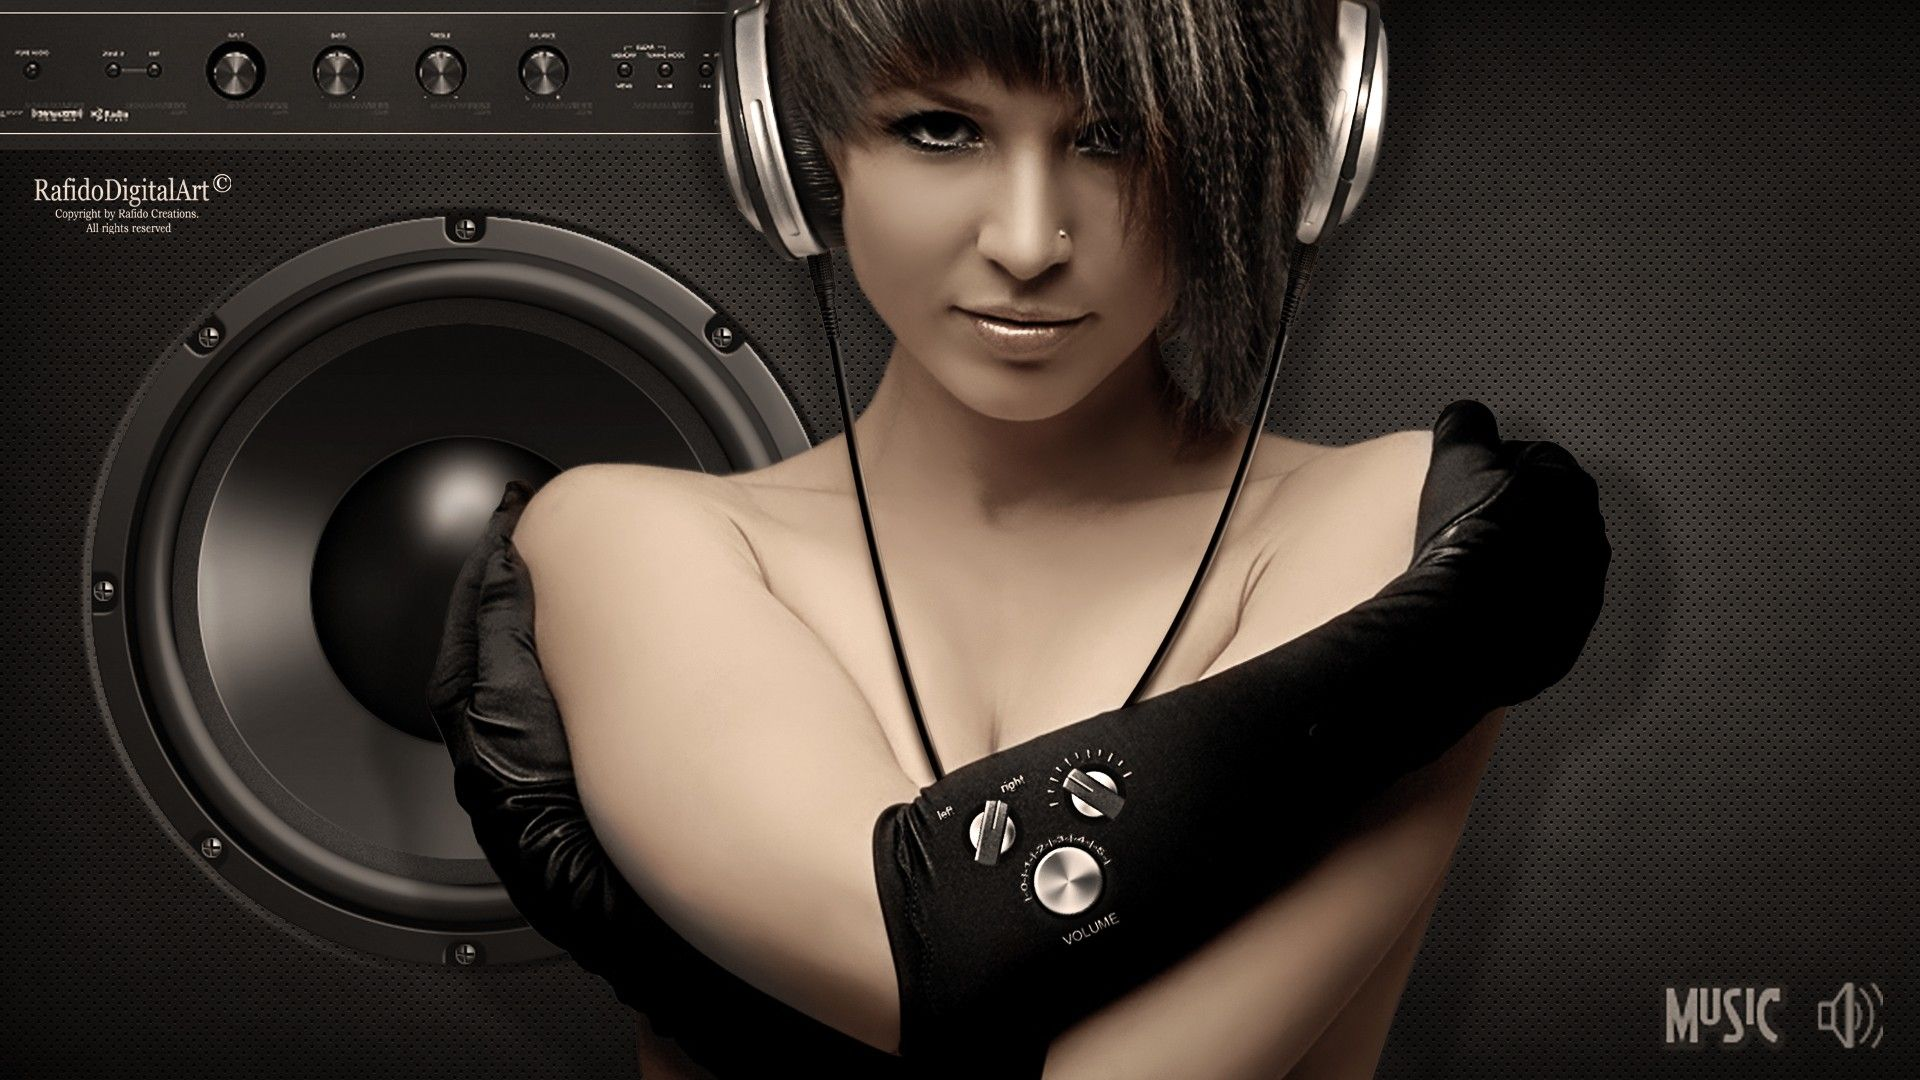 Music-Headphones-Girl-Manipulation